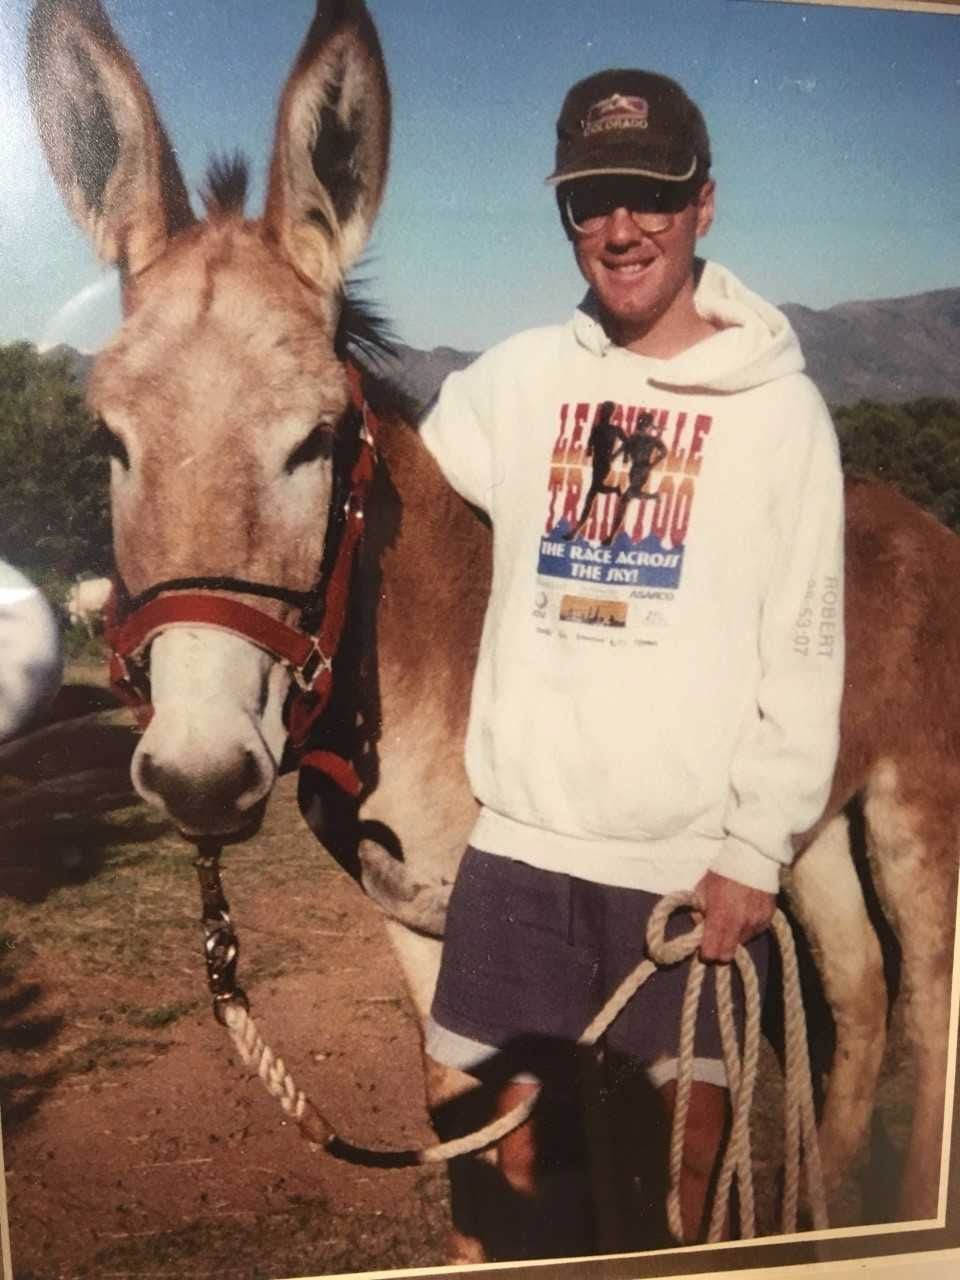 Everyone Has A Story: De Soto brothers enjoy sport of Pack Burro Racing